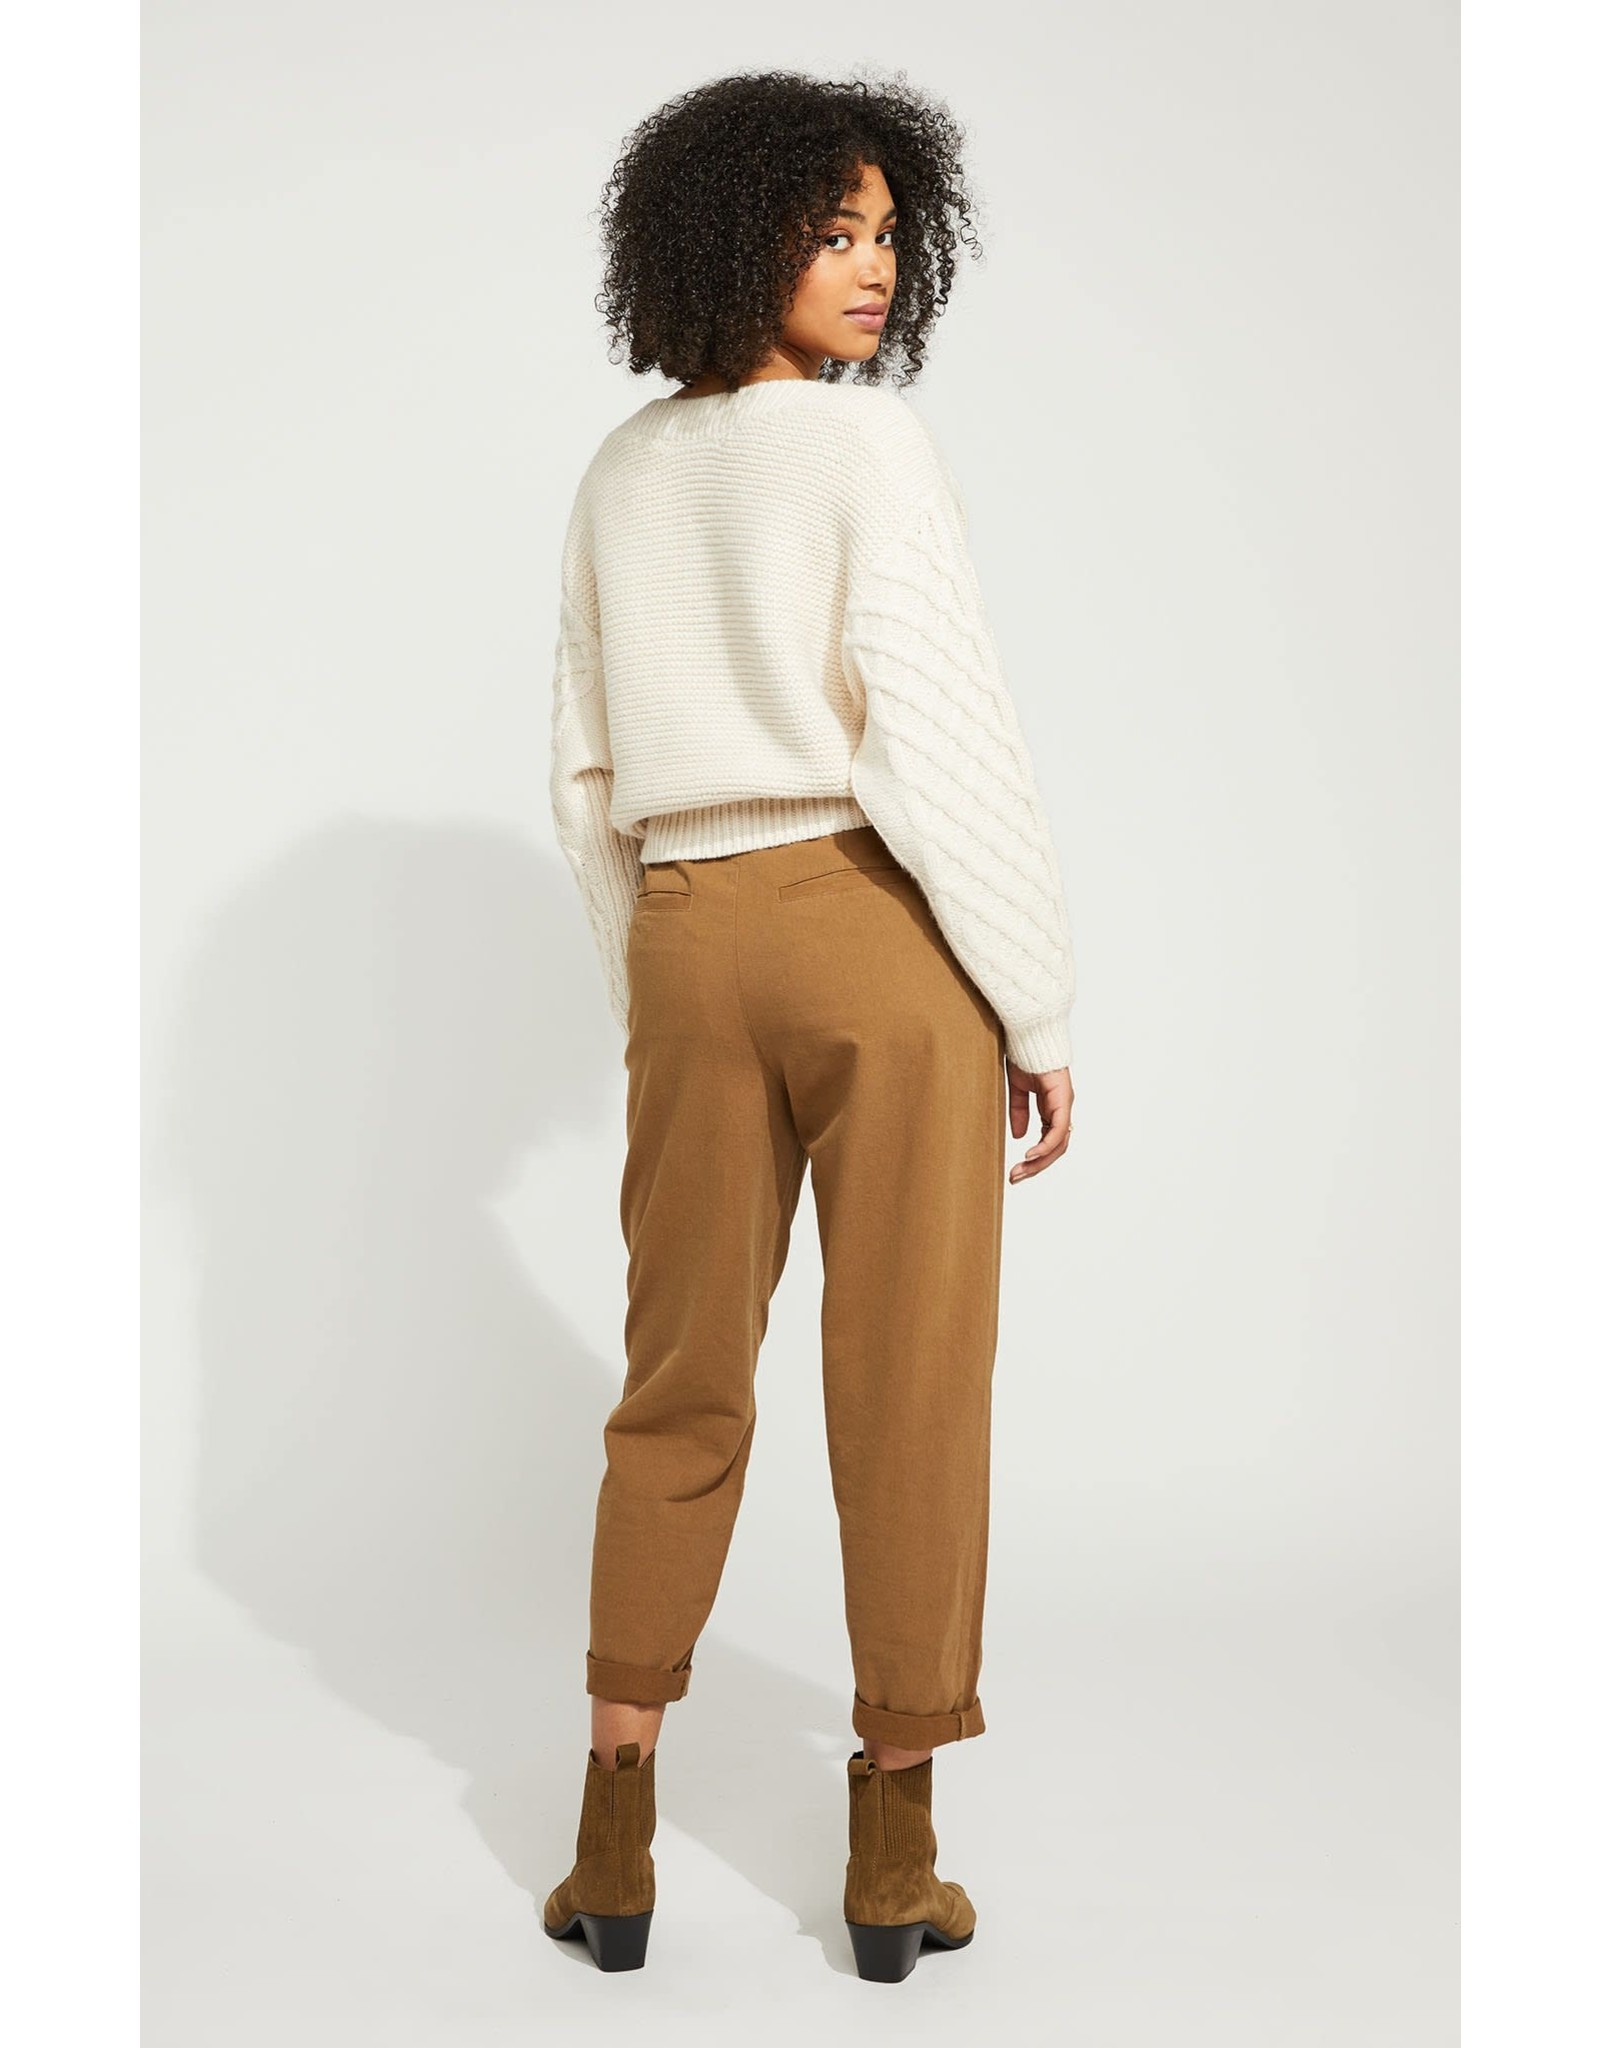 Gentle Fawn - Manchester Pant Black or Brown